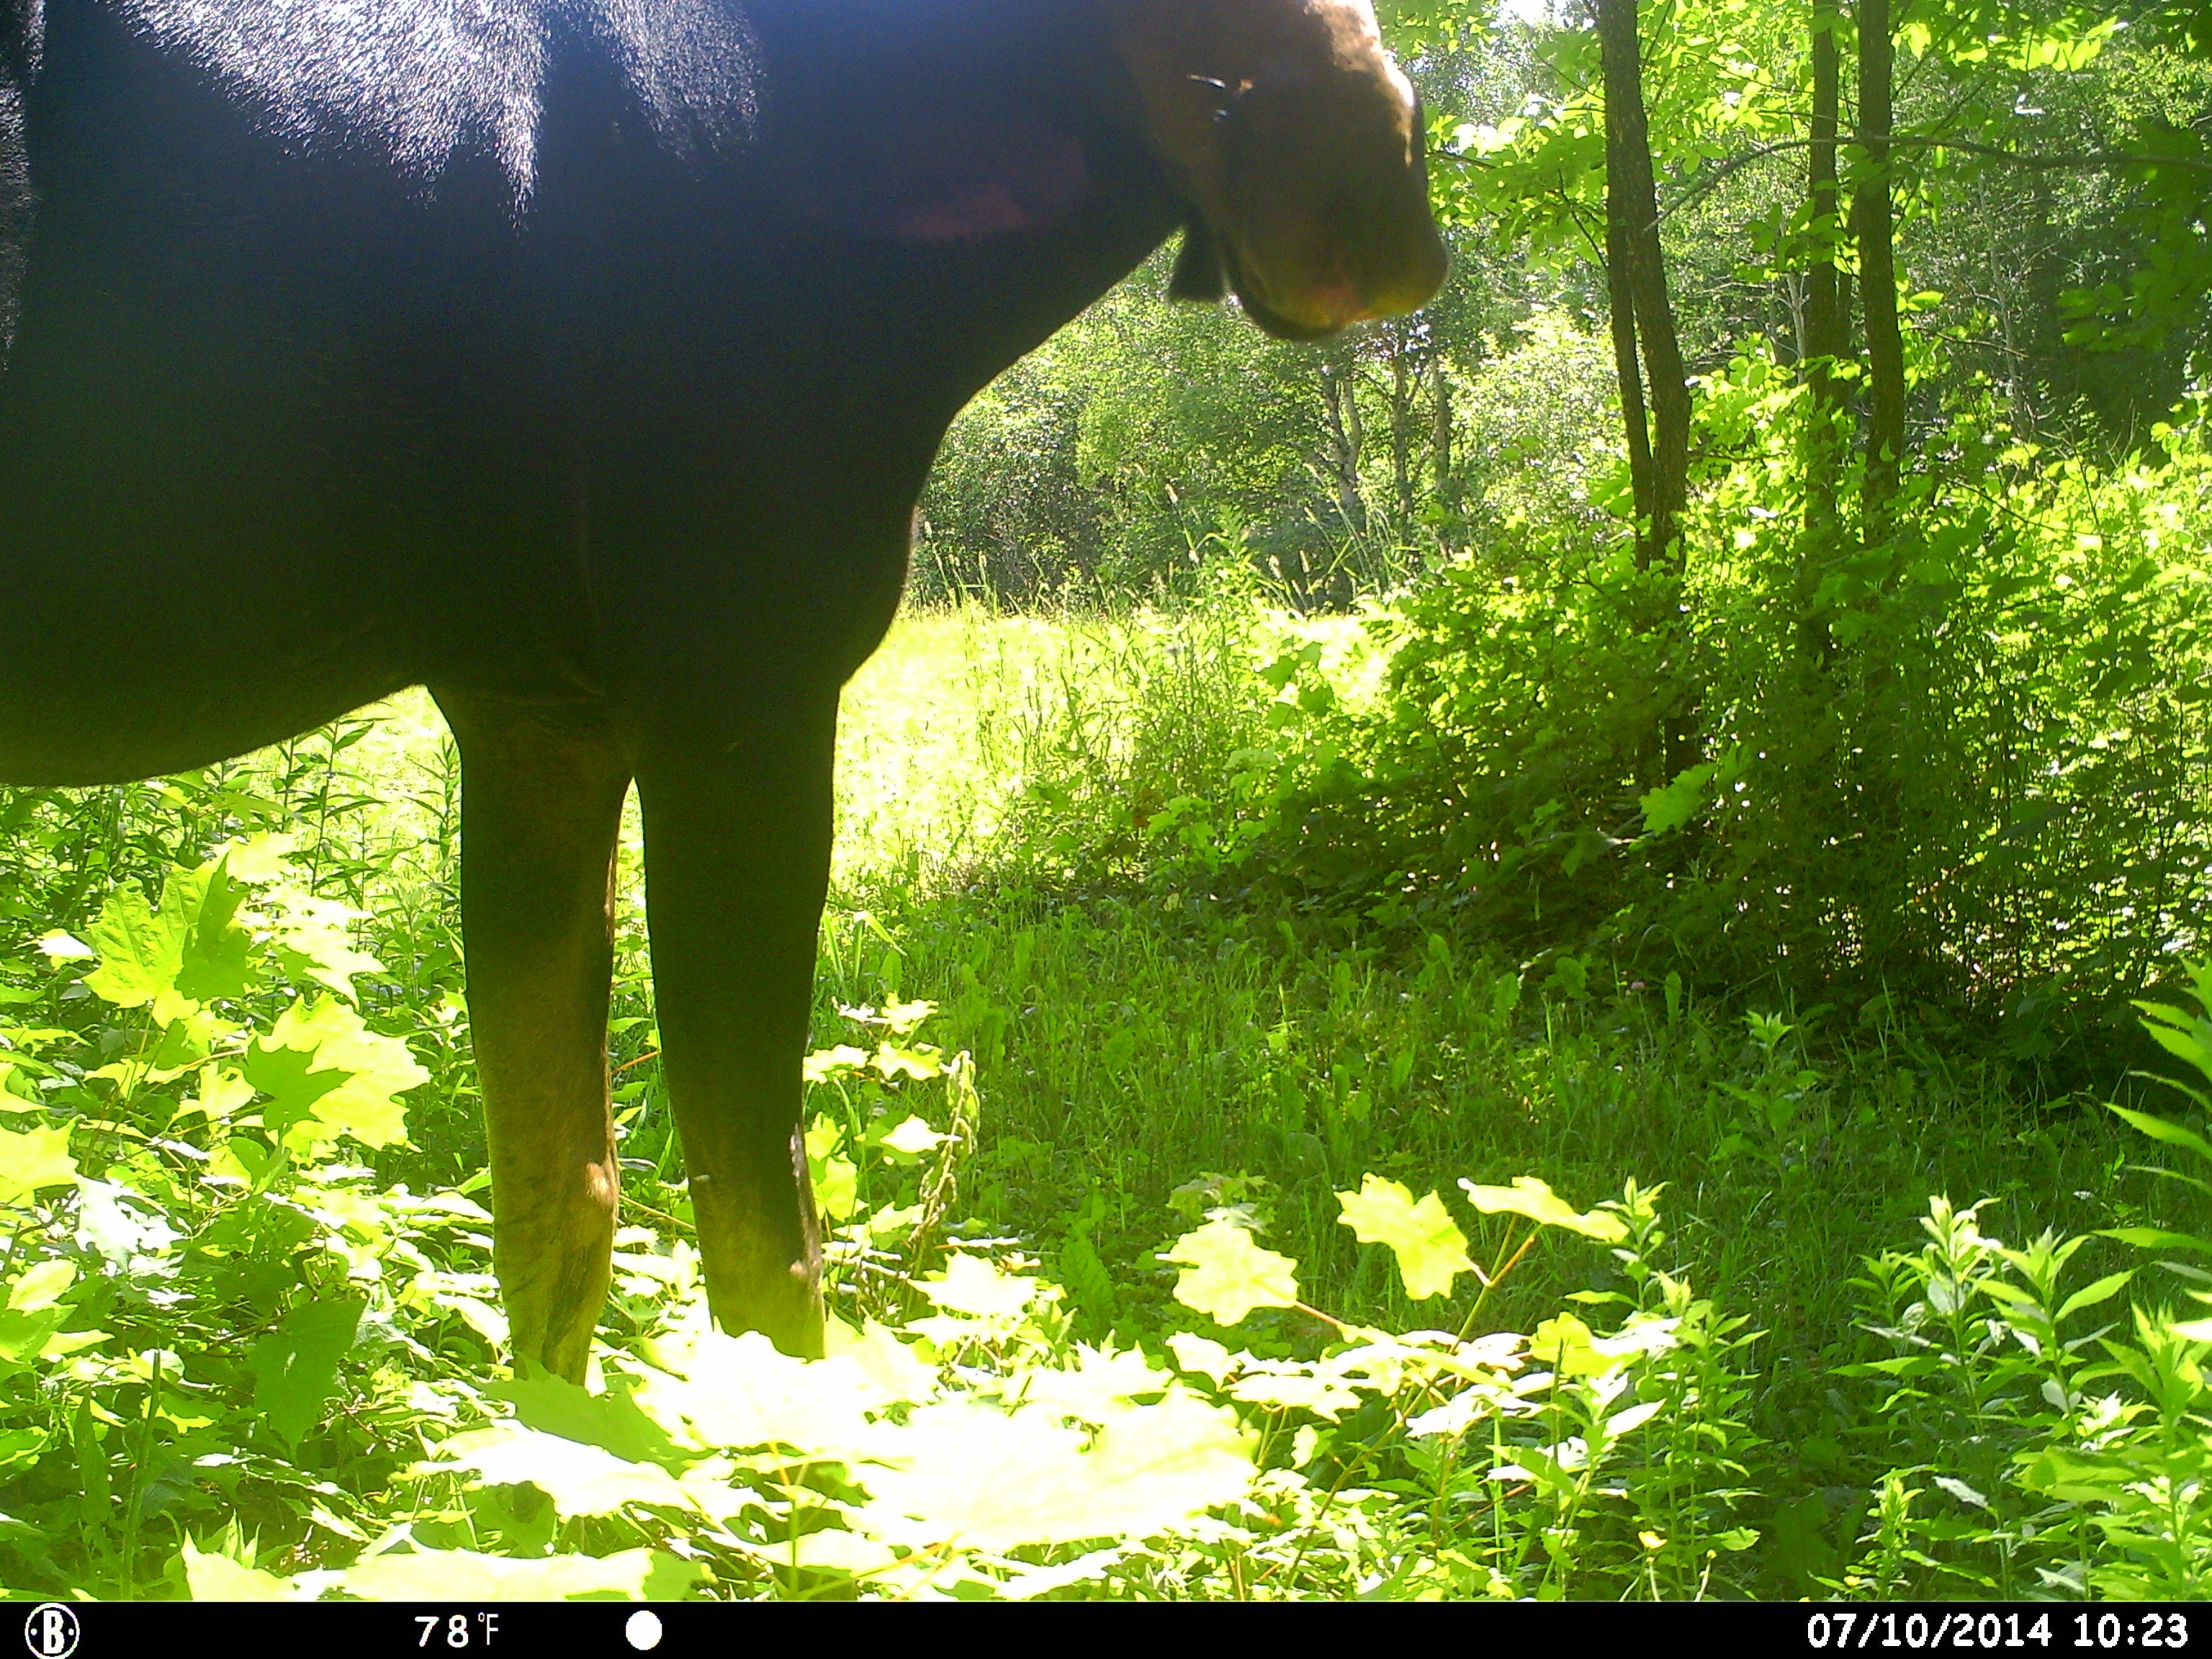 Update from the Farm Cam